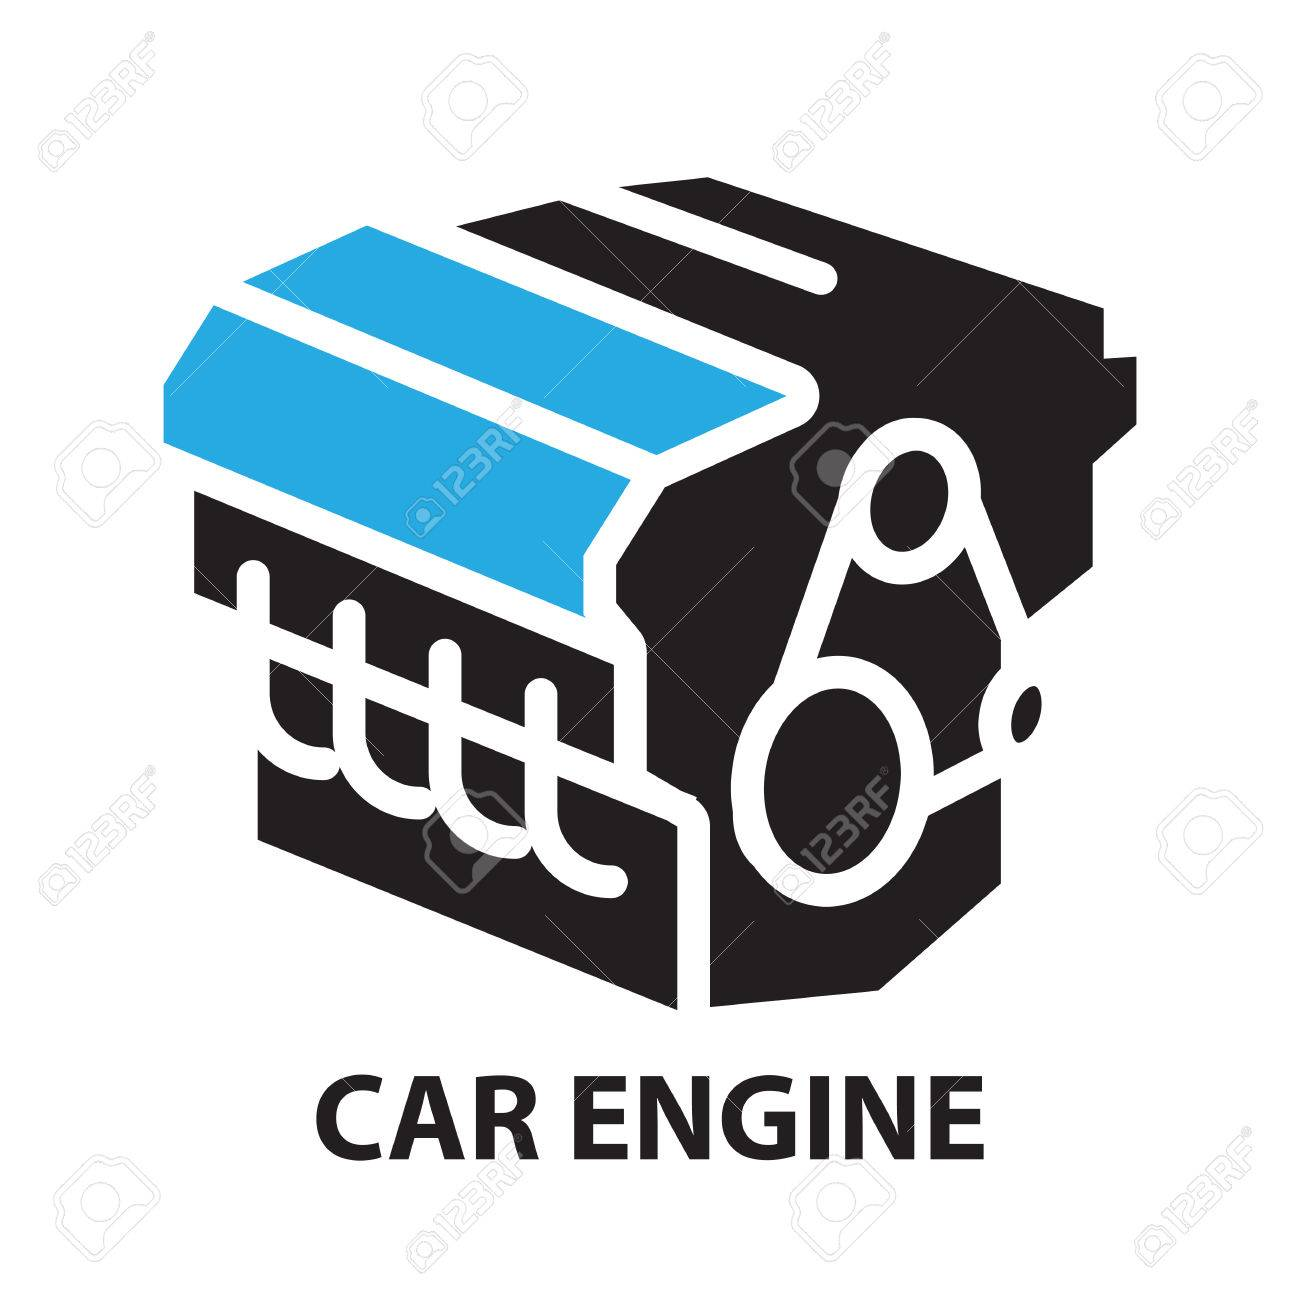 Car Engine Icon And Symbol Royalty Free Cliparts Vectors And